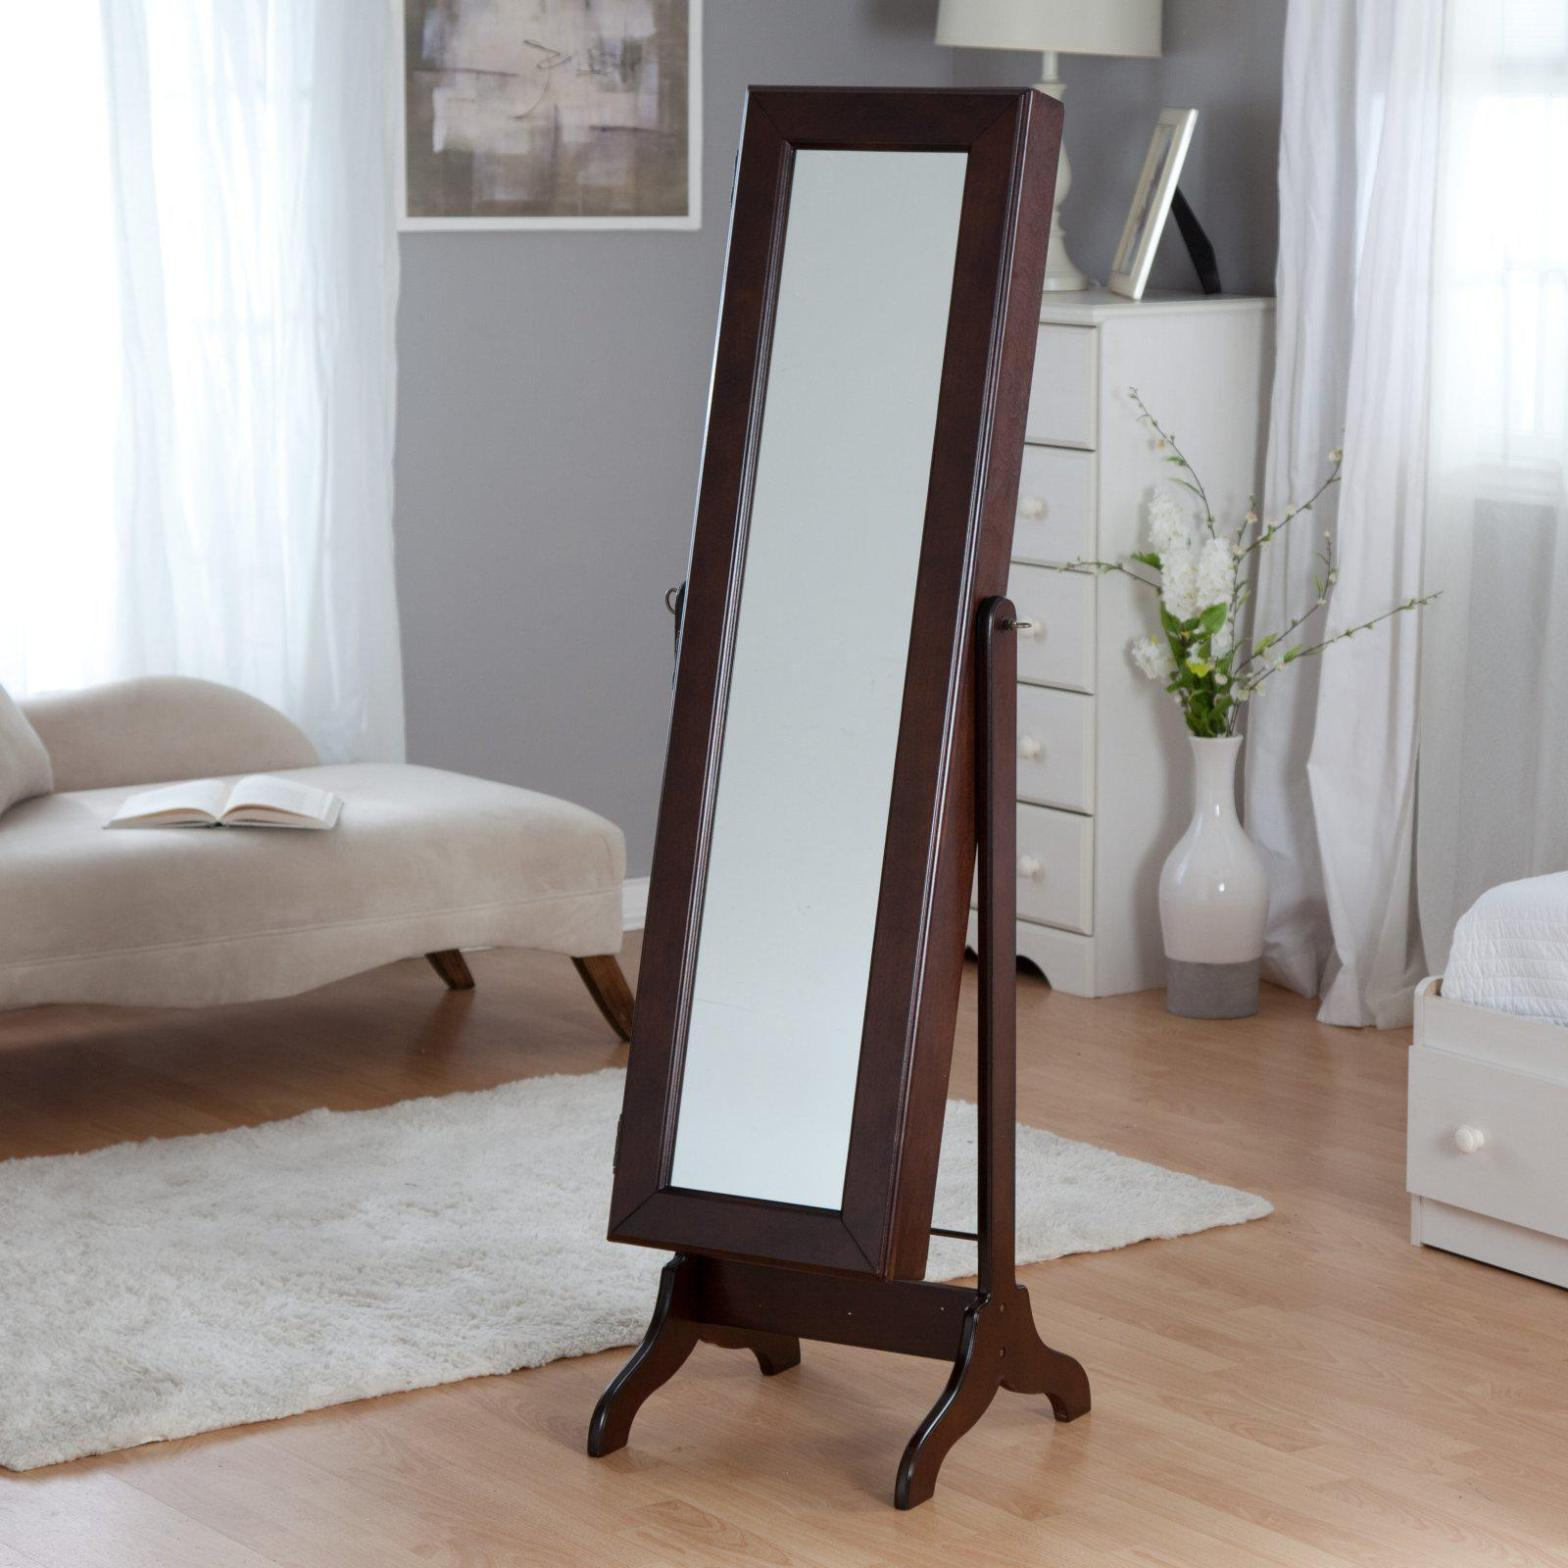 Image of: Mirror Standing Jewelry Armoire